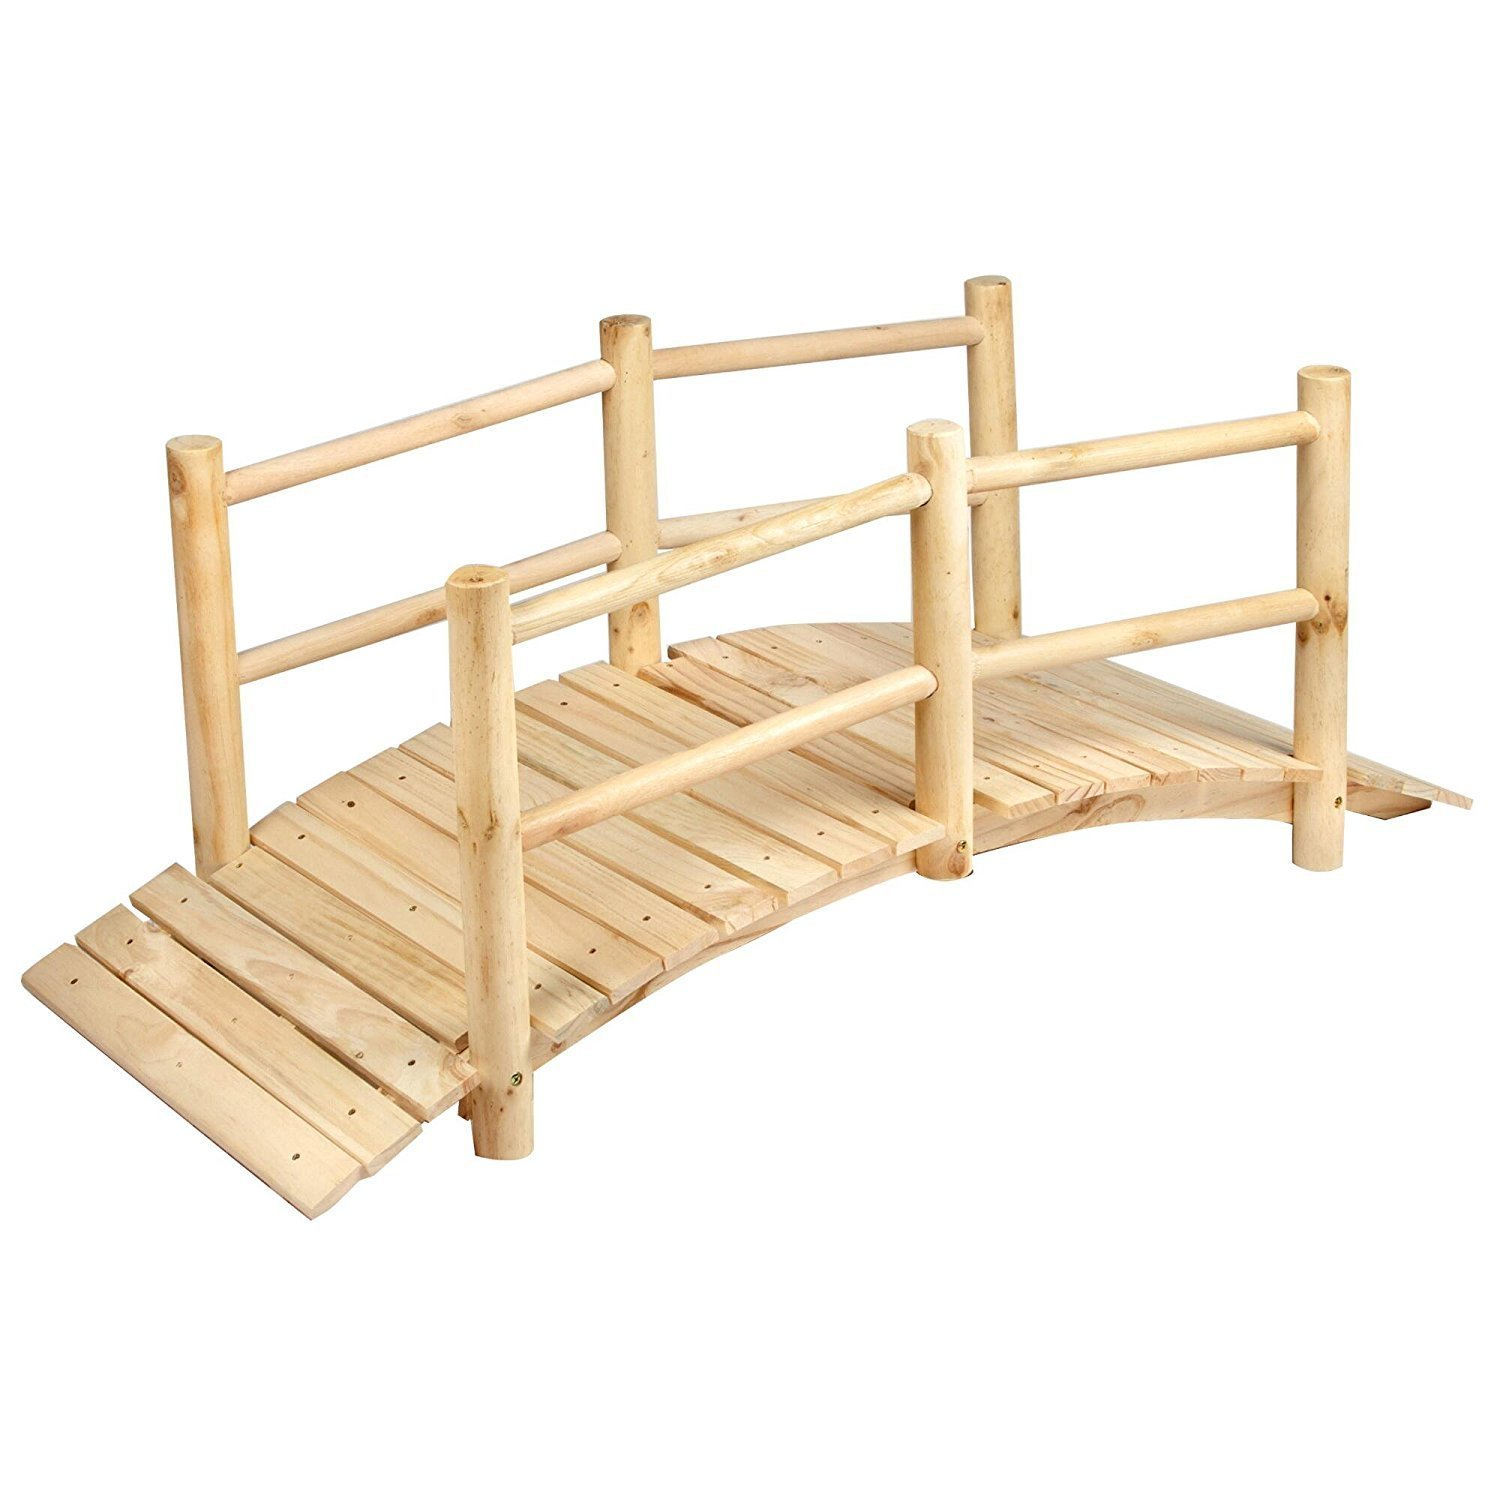 5 Foot Wood Wooden Bridge -